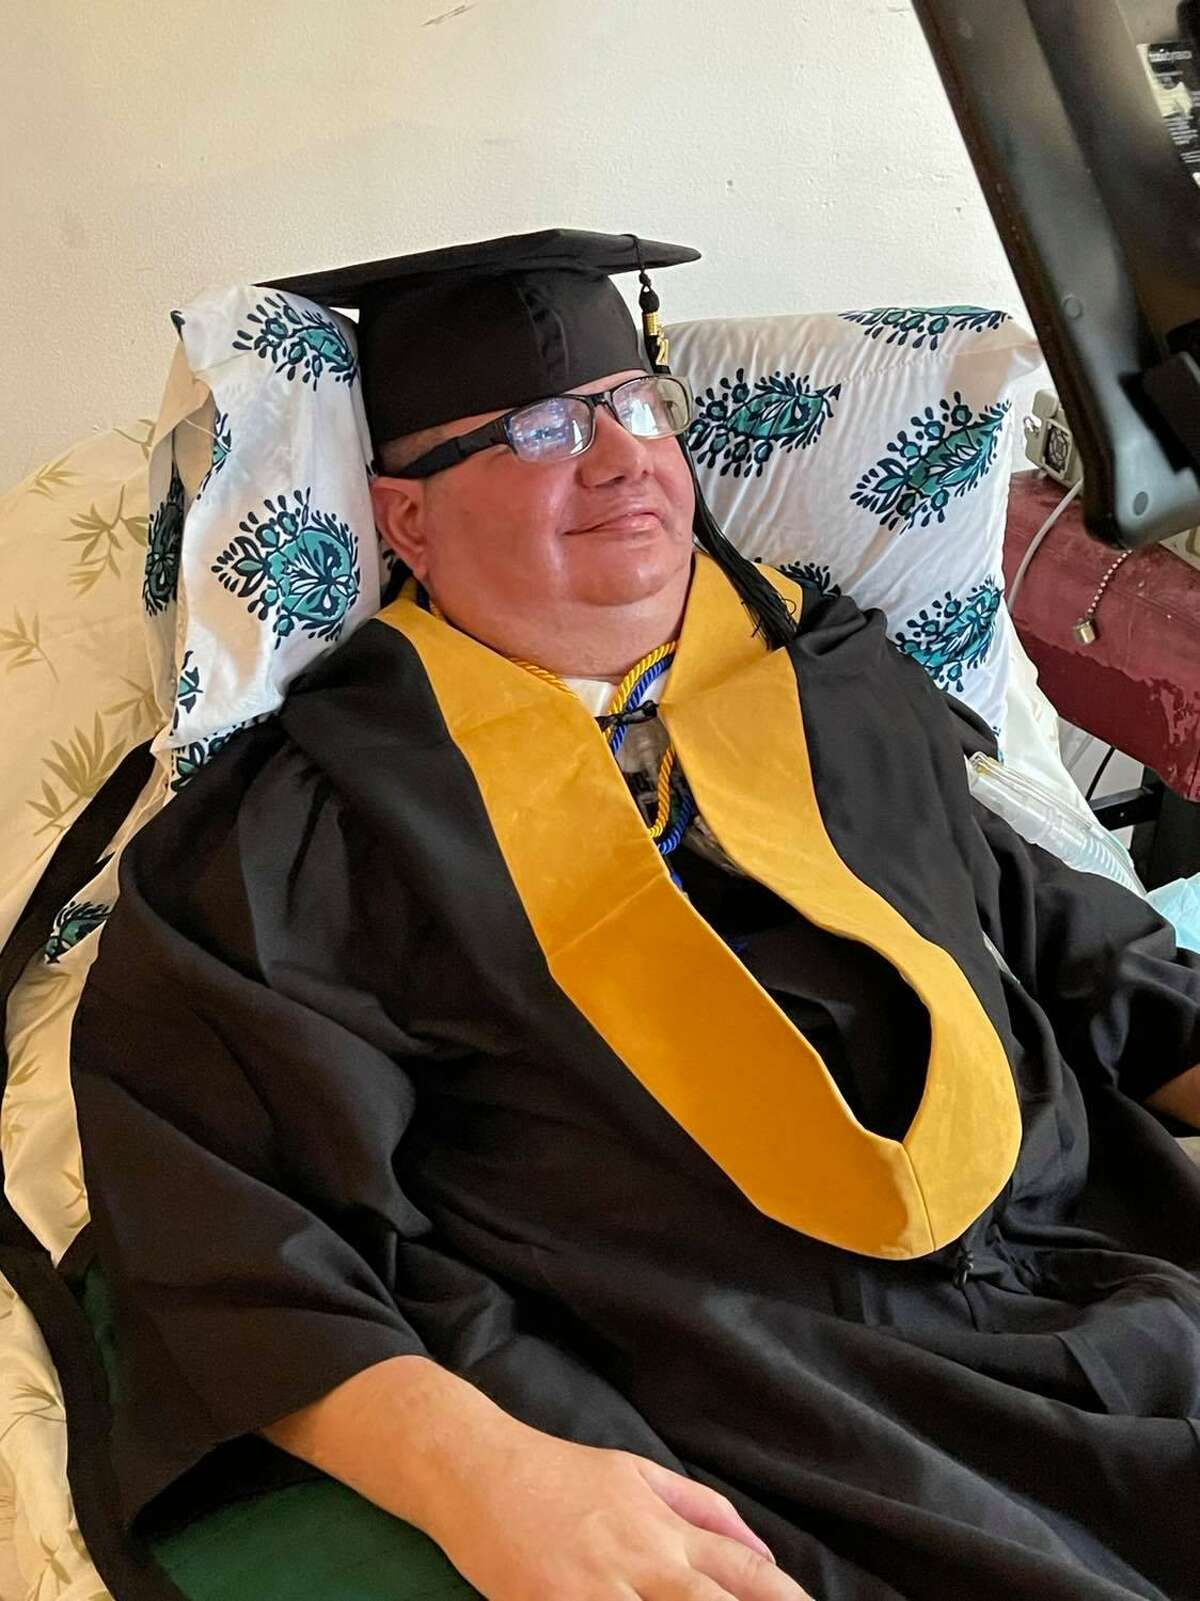 Eliseo Ilarraza wears his cap and gown for his online master's degree graduation ceremony from Our Lady of the Lake University.